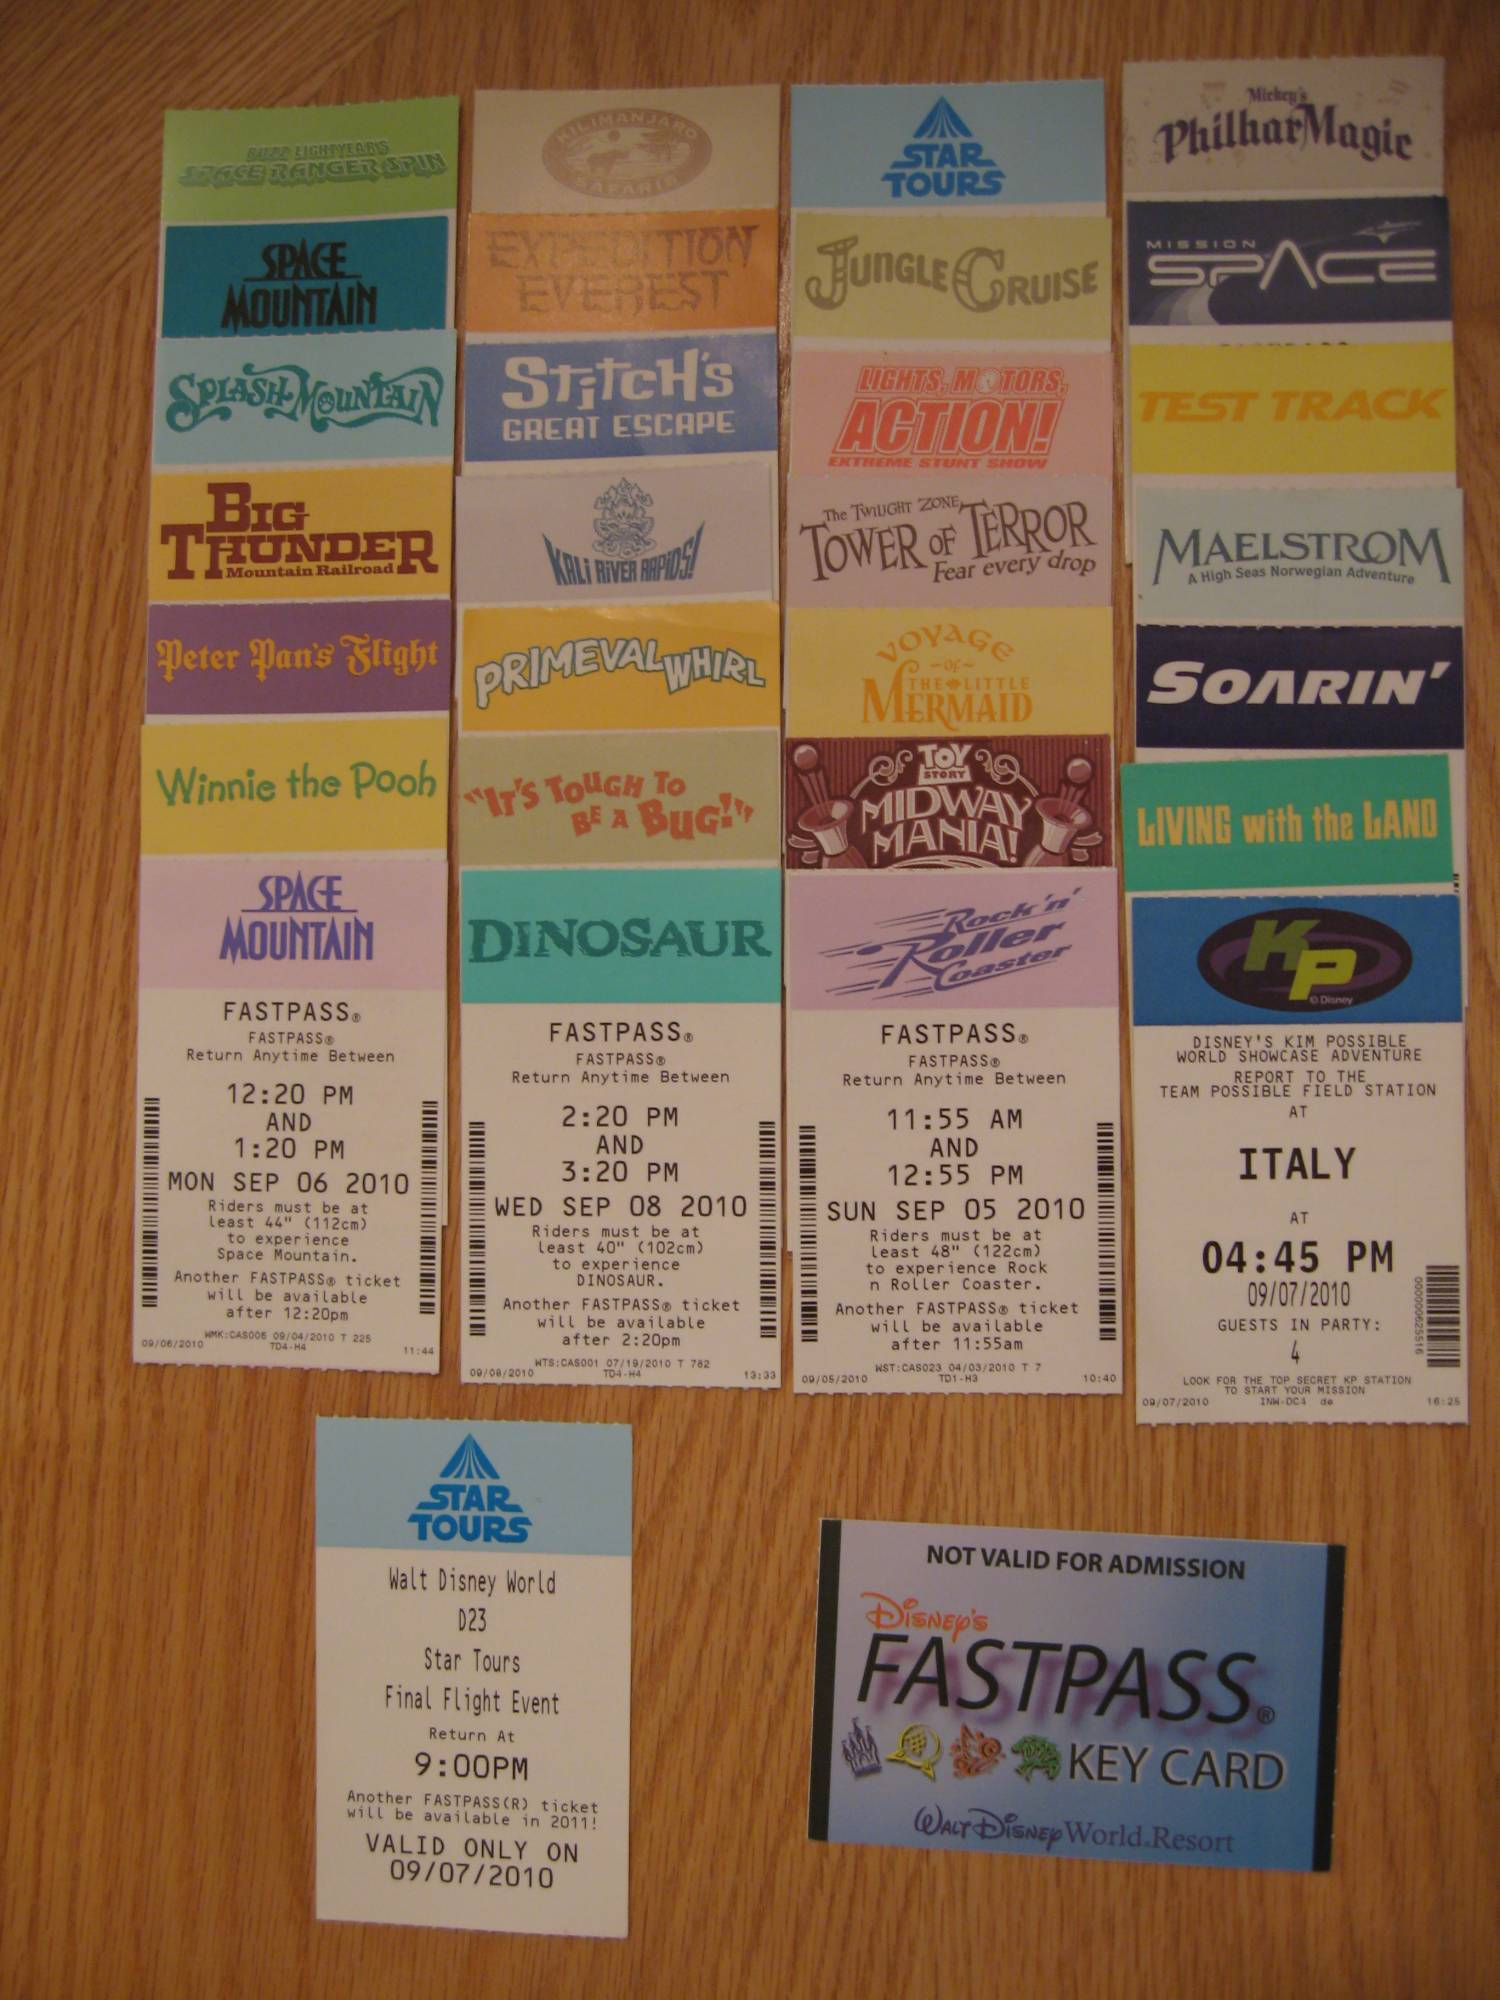 Get a sneak peek at the new FASTPASS+ |PassPorter.com